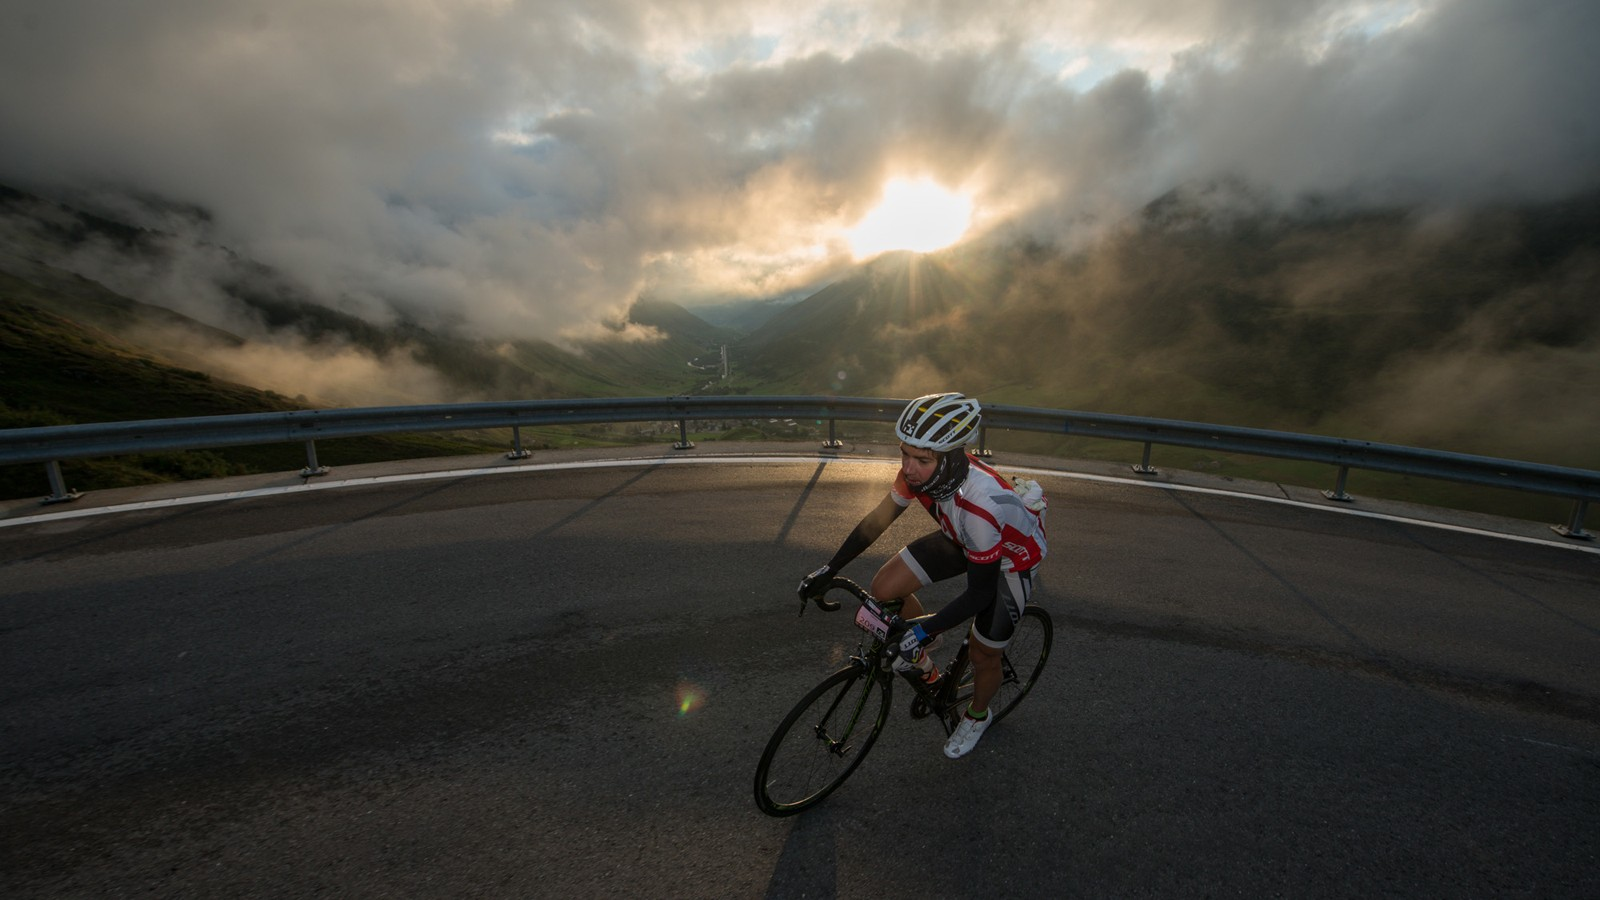 A rider on the chilly Furkapass early on stage 6. Temperatures were below zero at the summit